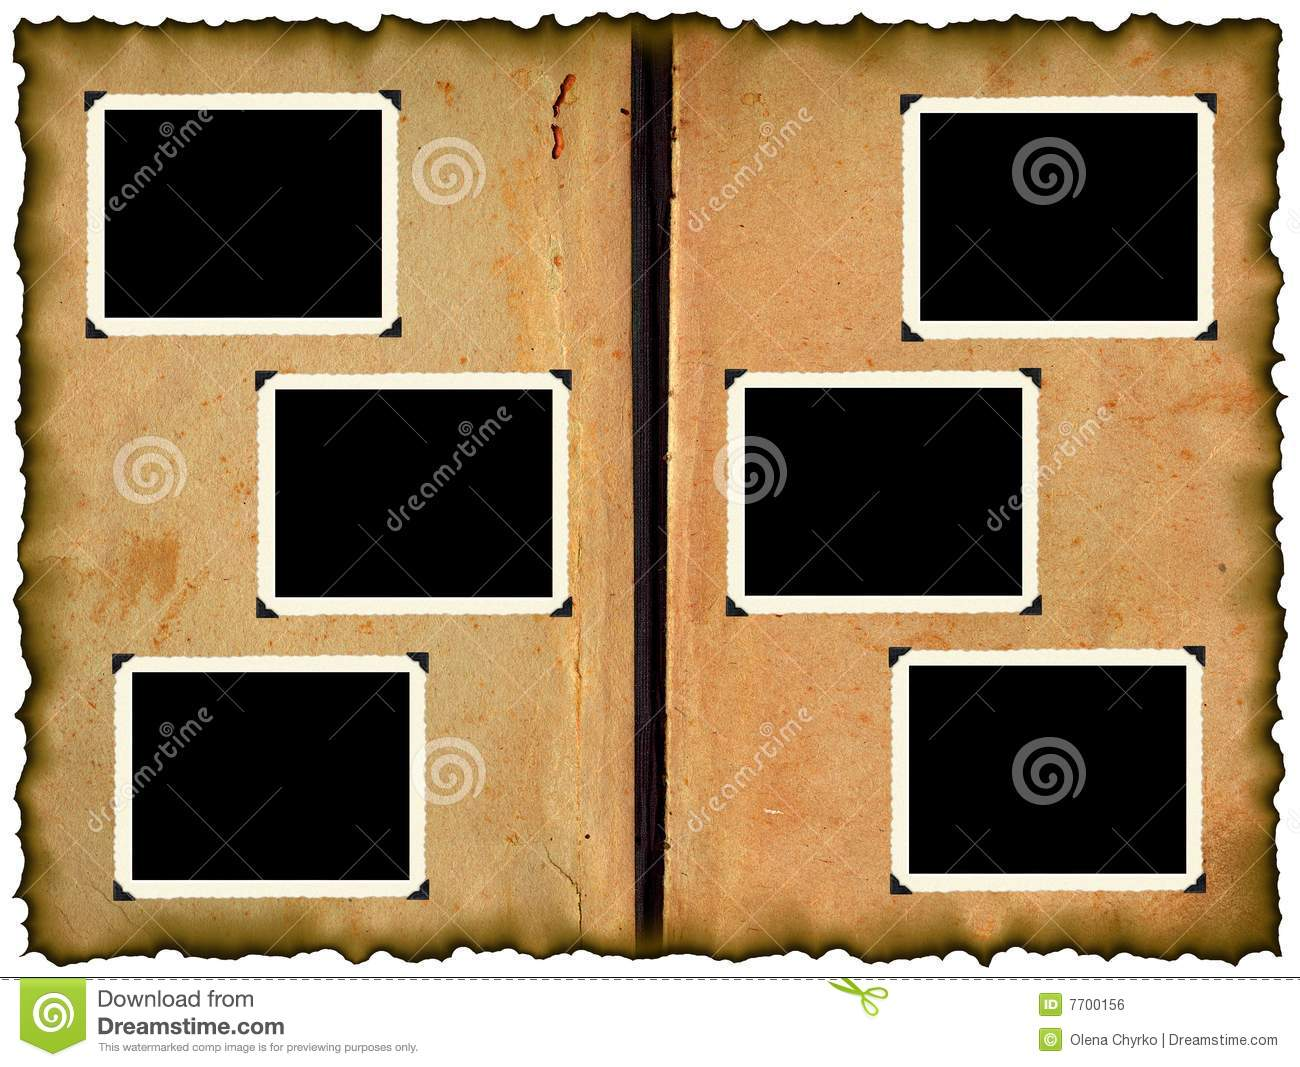 photo frameworks on old album royalty free stock image. Black Bedroom Furniture Sets. Home Design Ideas